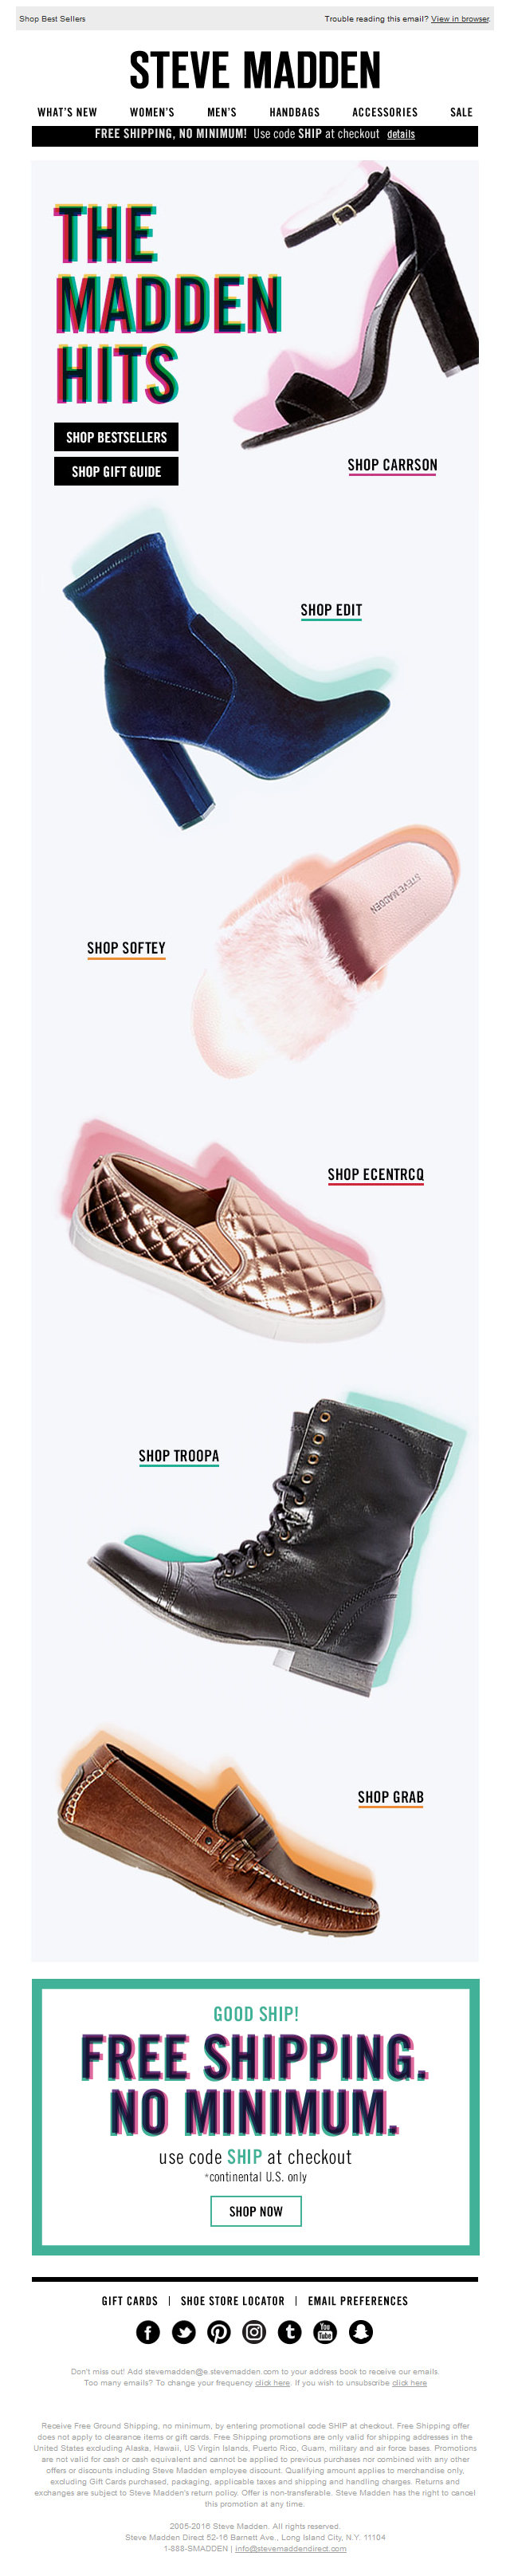 Steve Madden - Only the best for you